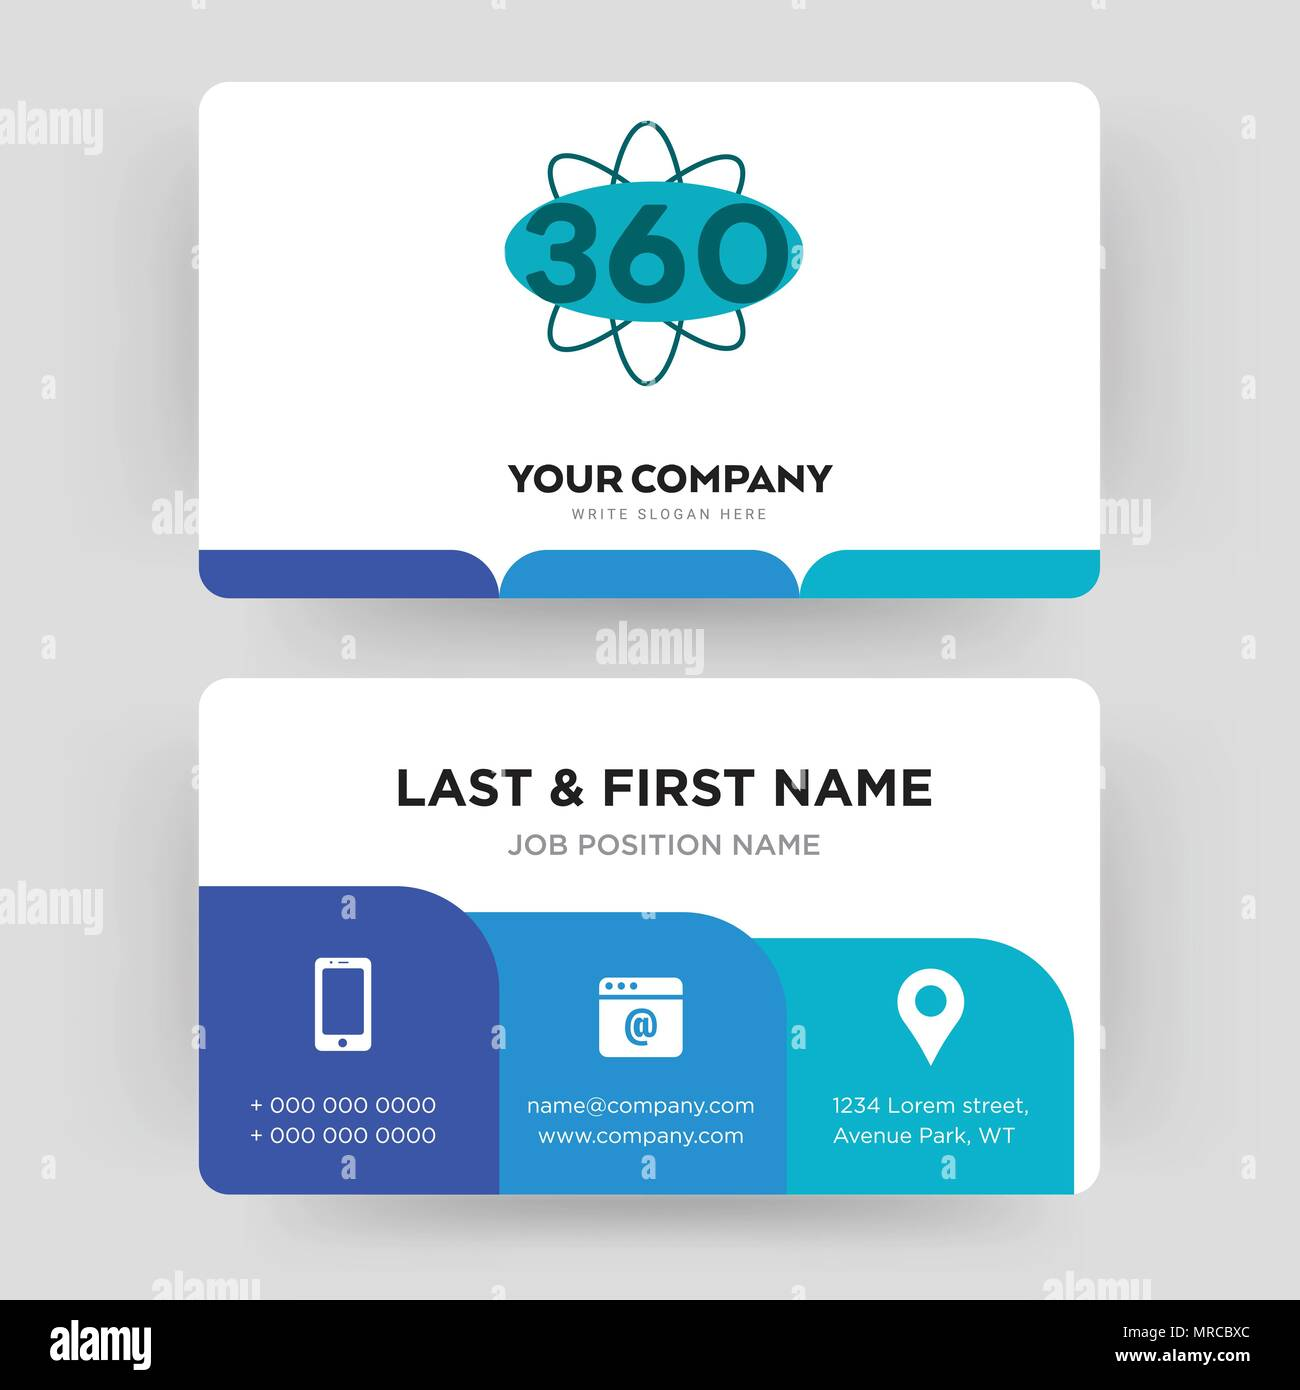 360 degree business card design template visiting for your company 360 degree business card design template visiting for your company modern creative and clean identity card vector colourmoves